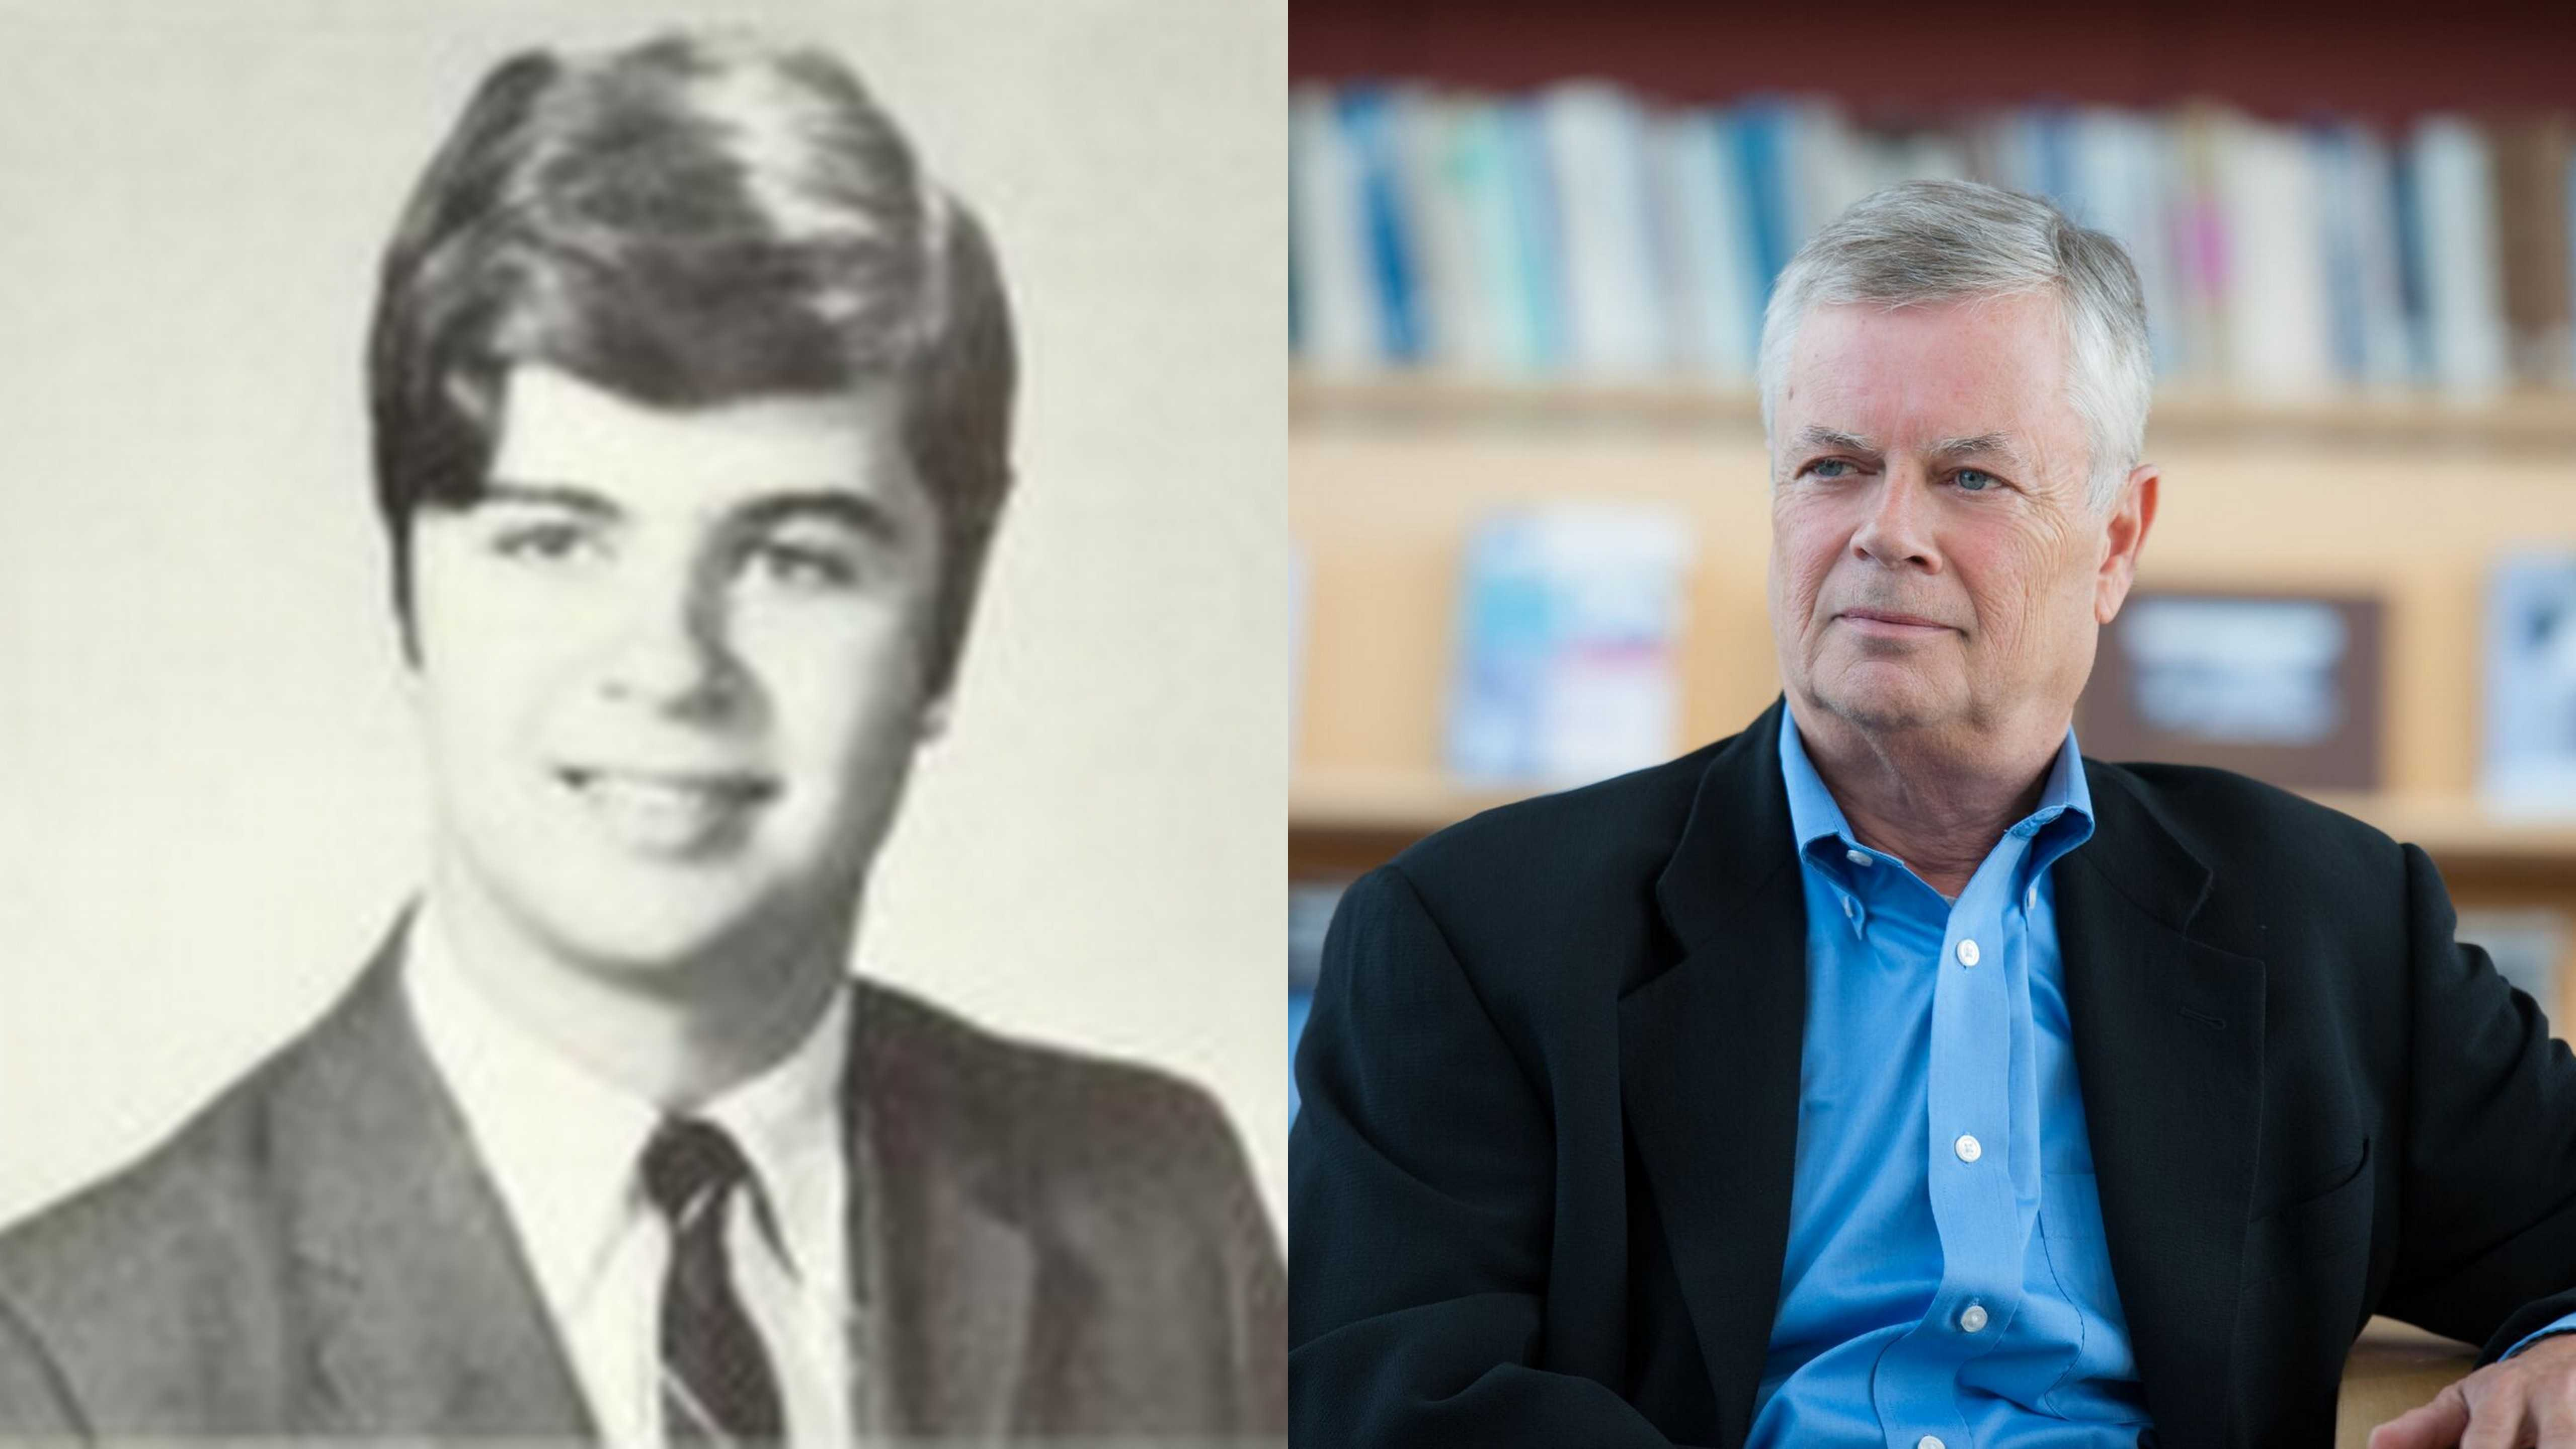 Stephen Kinzer '69 then and now. Photos from Murivian '69 (left) and provided by Megan Murphy (right).